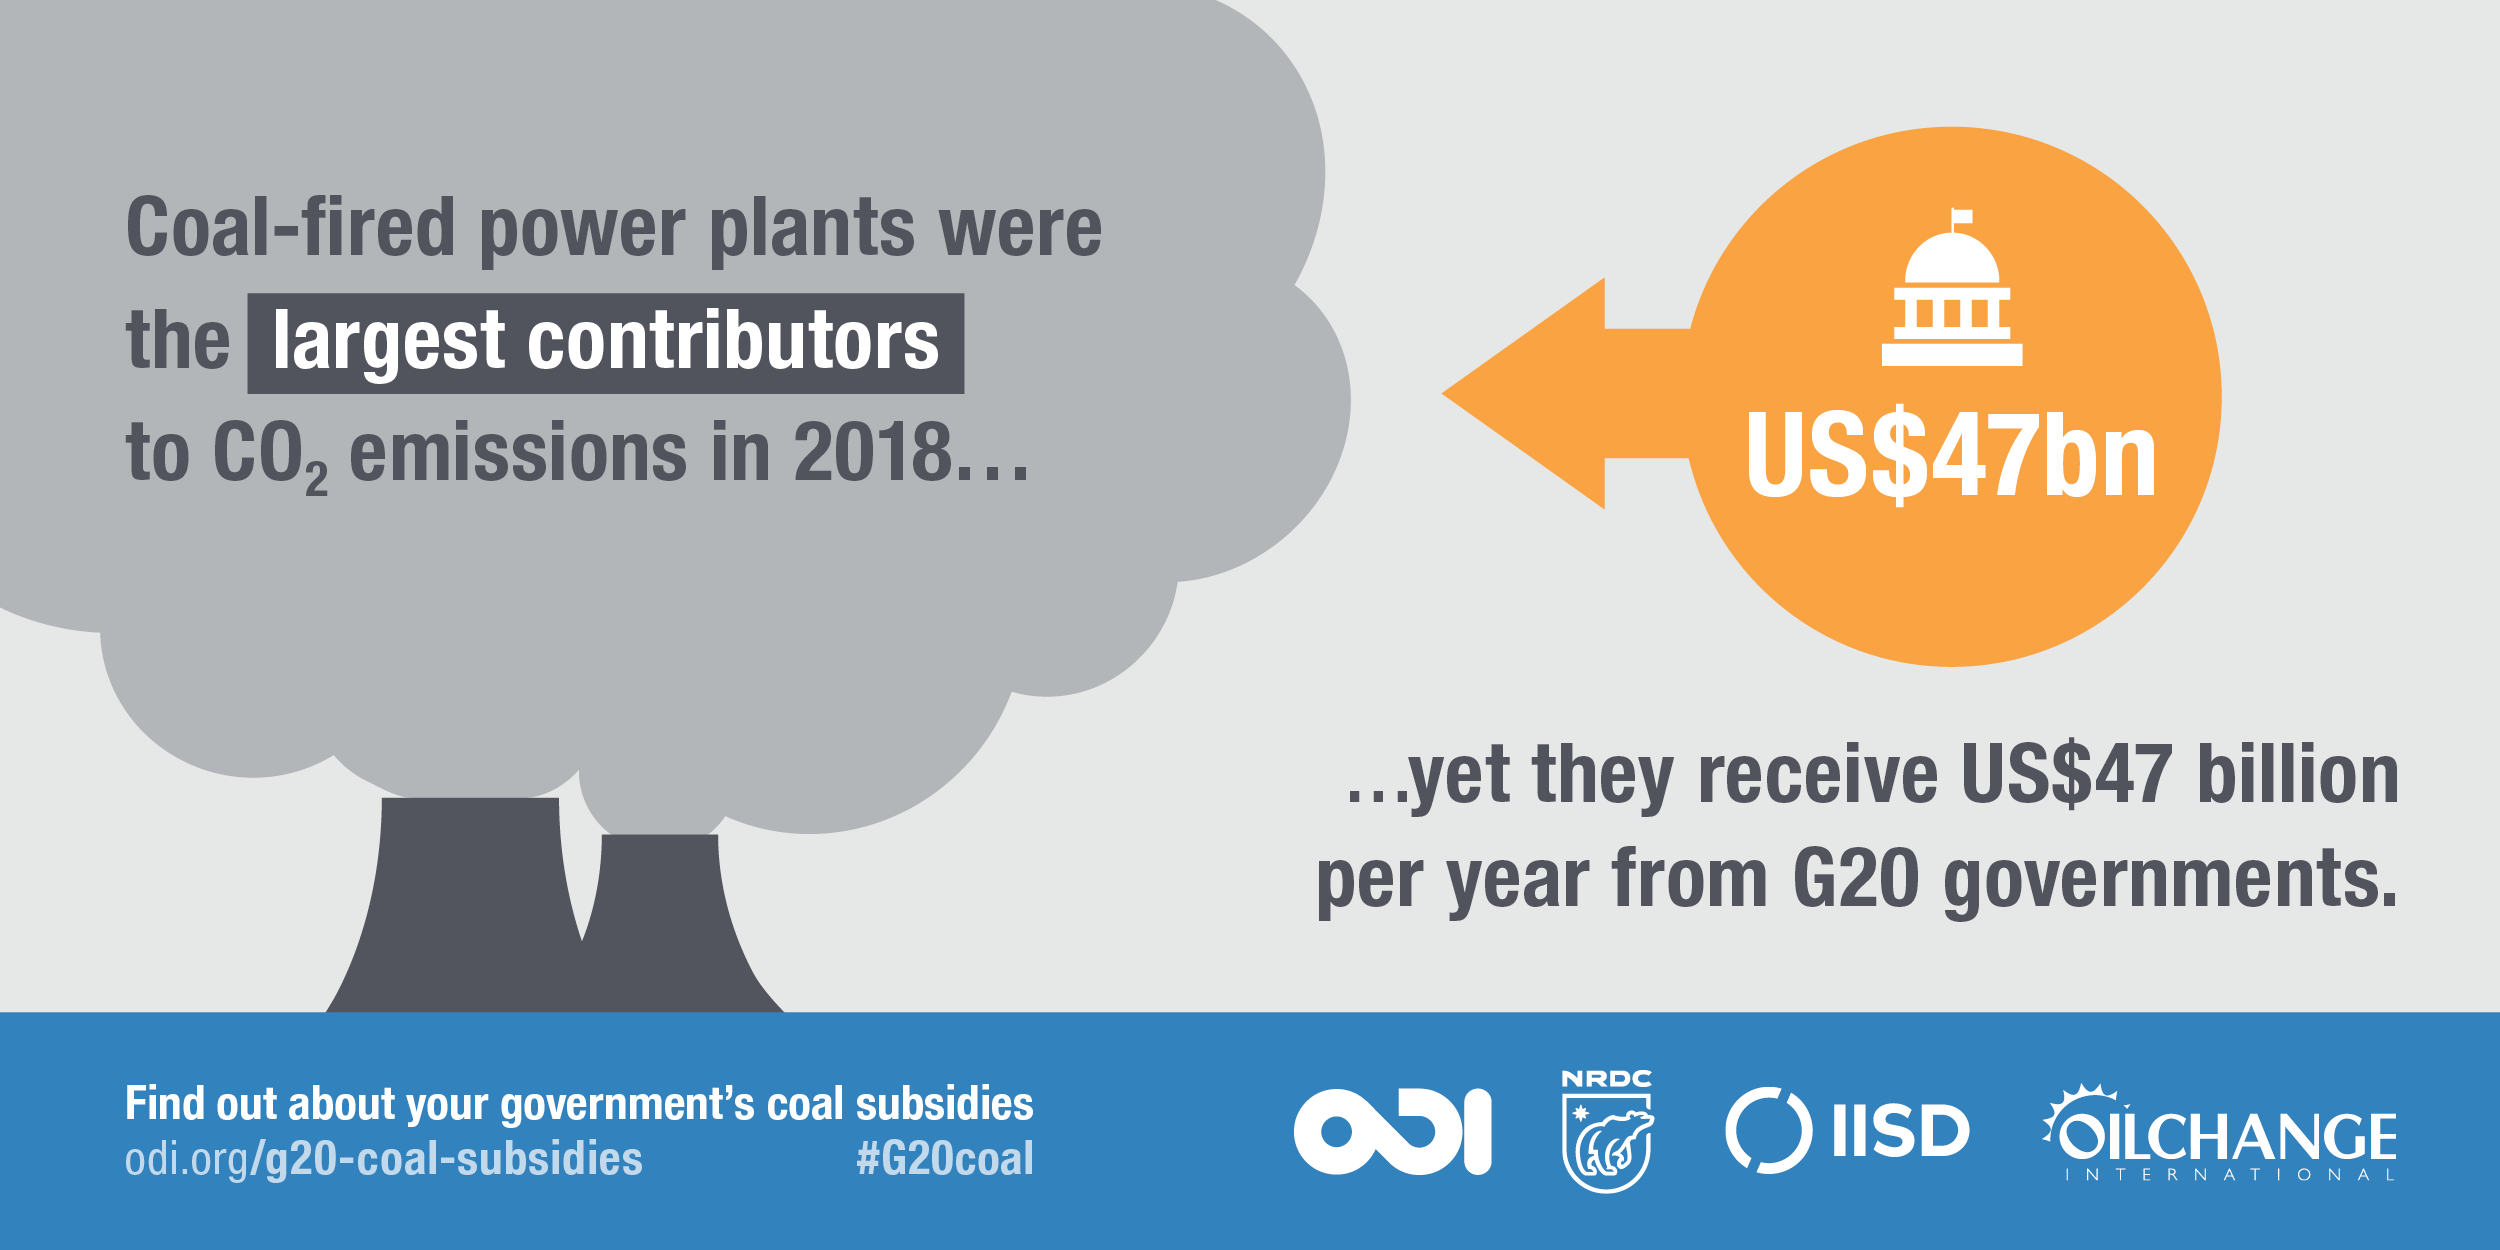 Coal-fired power plants were the largest contributors to CO2 emissions in 2018 yet they receive US$47 billion per year from G20 governments. Image: ODI